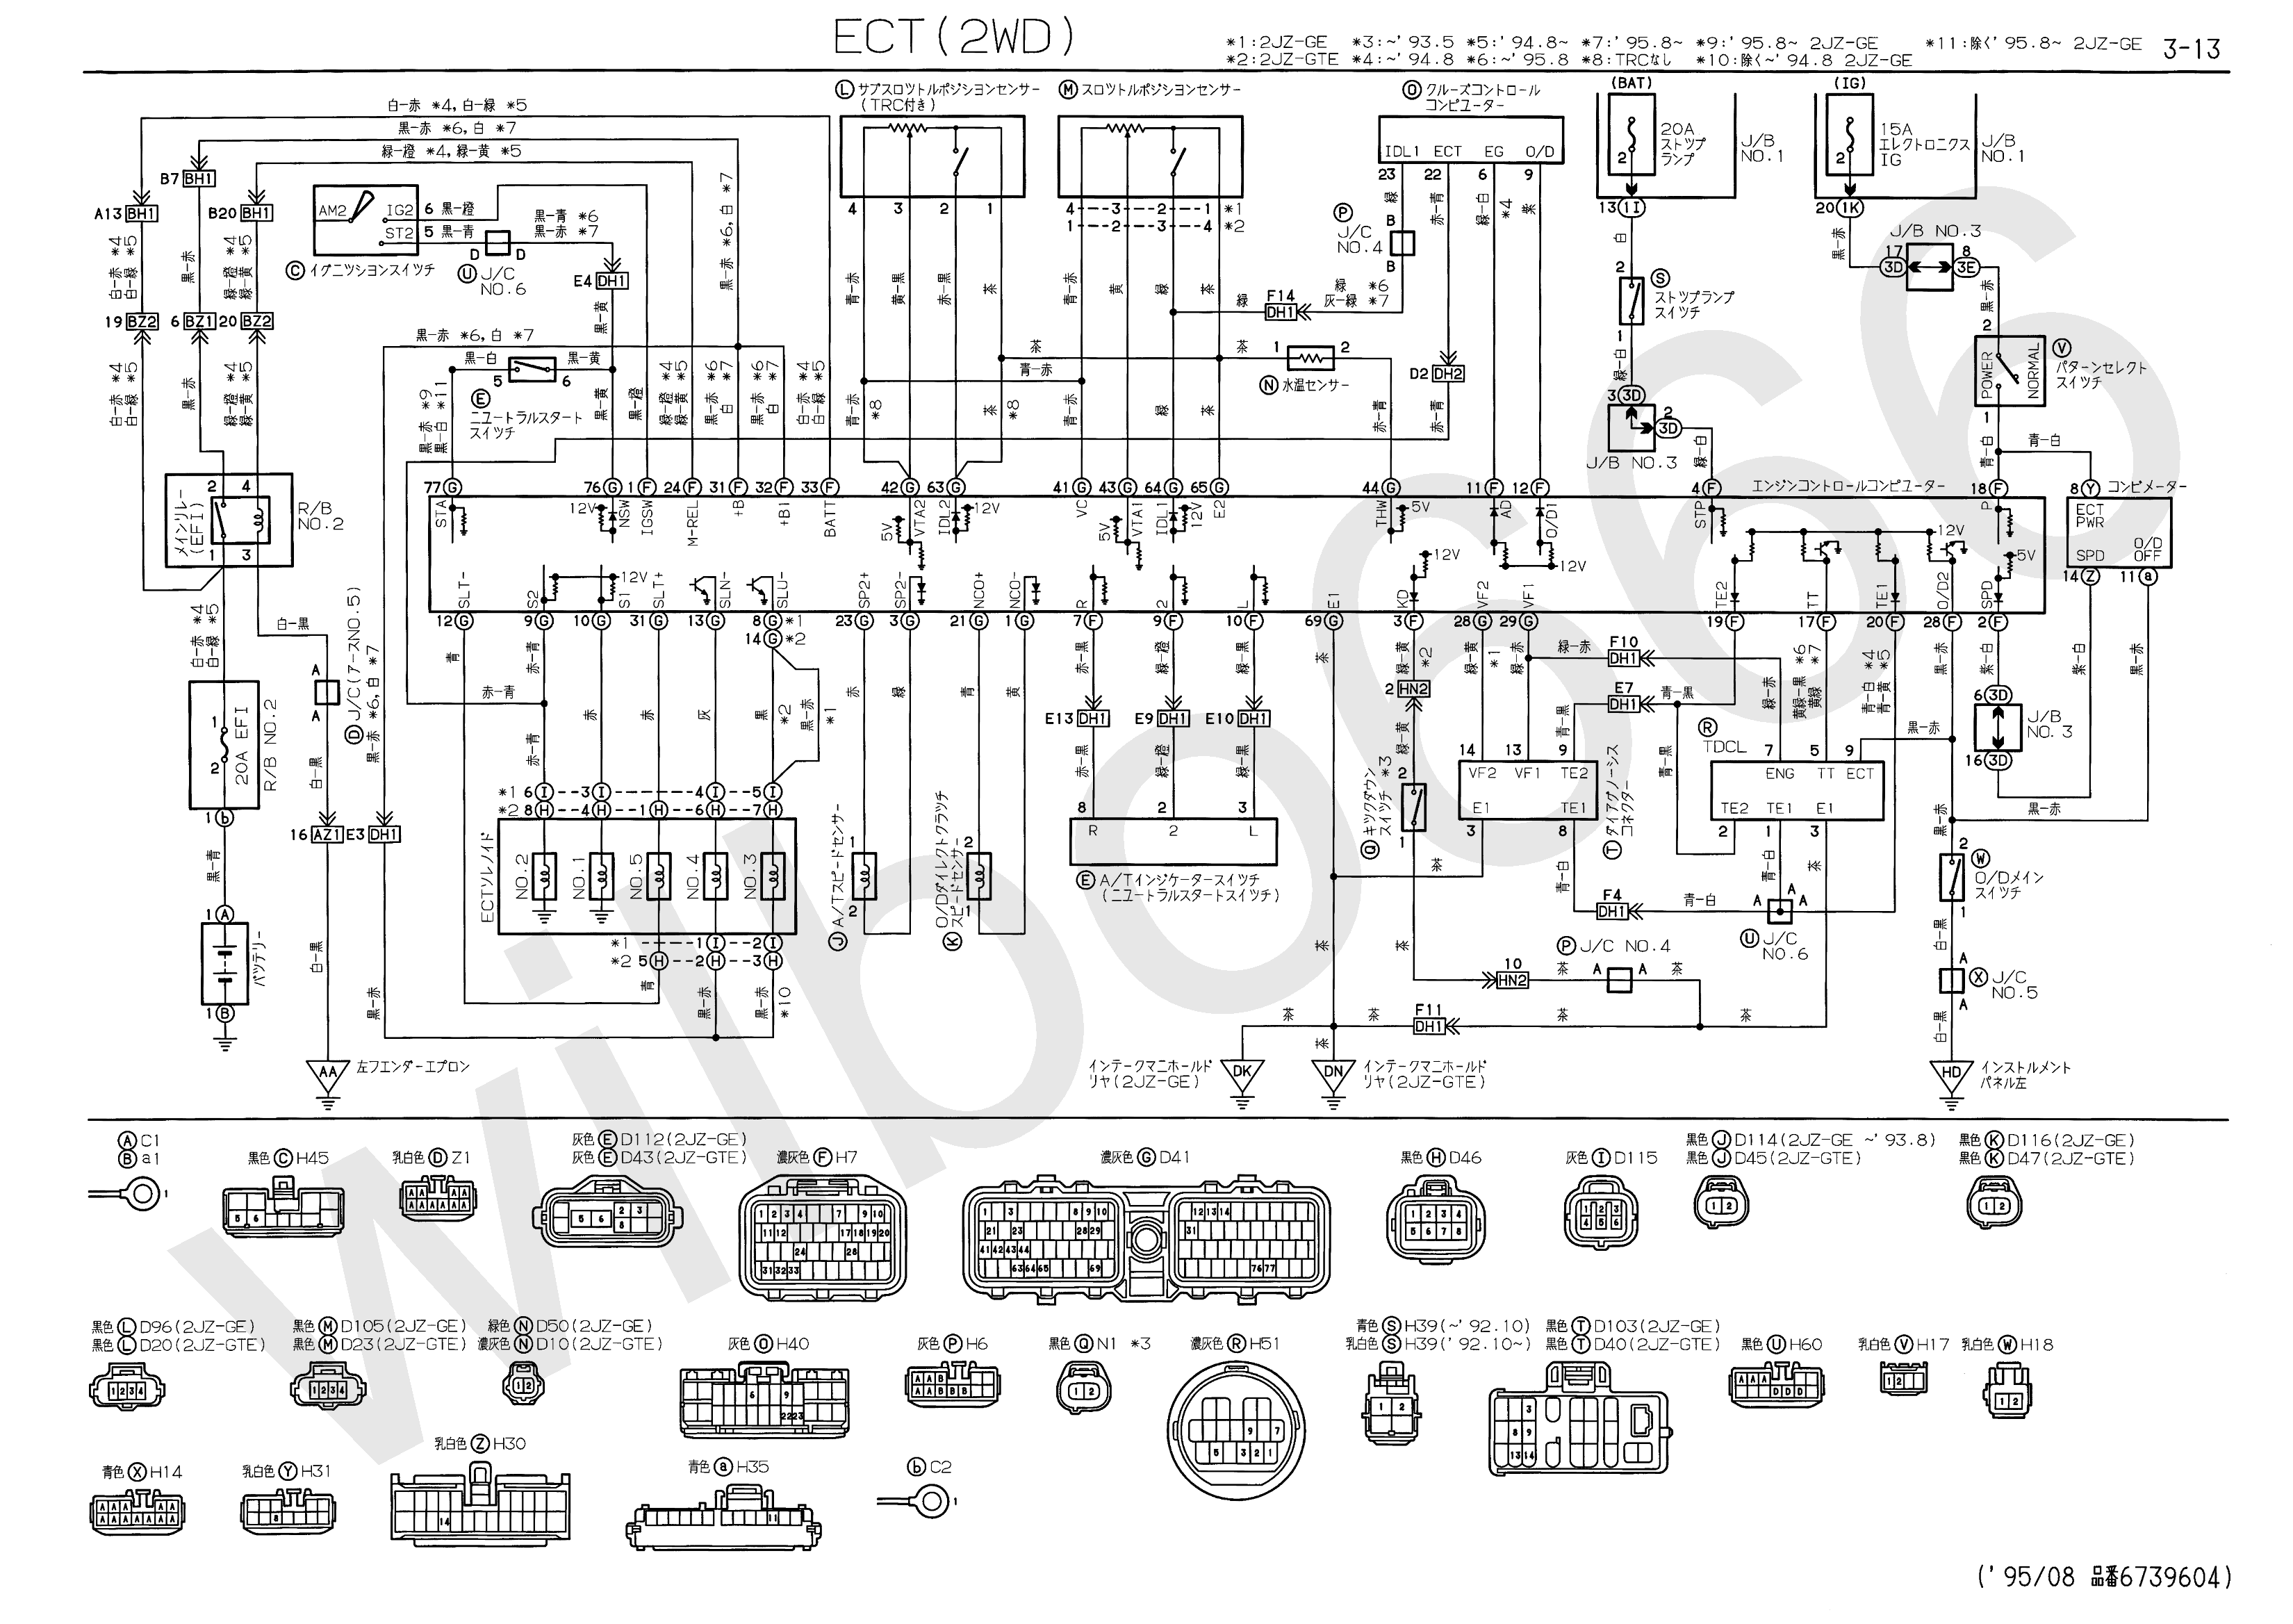 Kr 6914 Diagram 4afe Car Diagrams 4a Get Free Image About Wiring Diagram Schematic Wiring